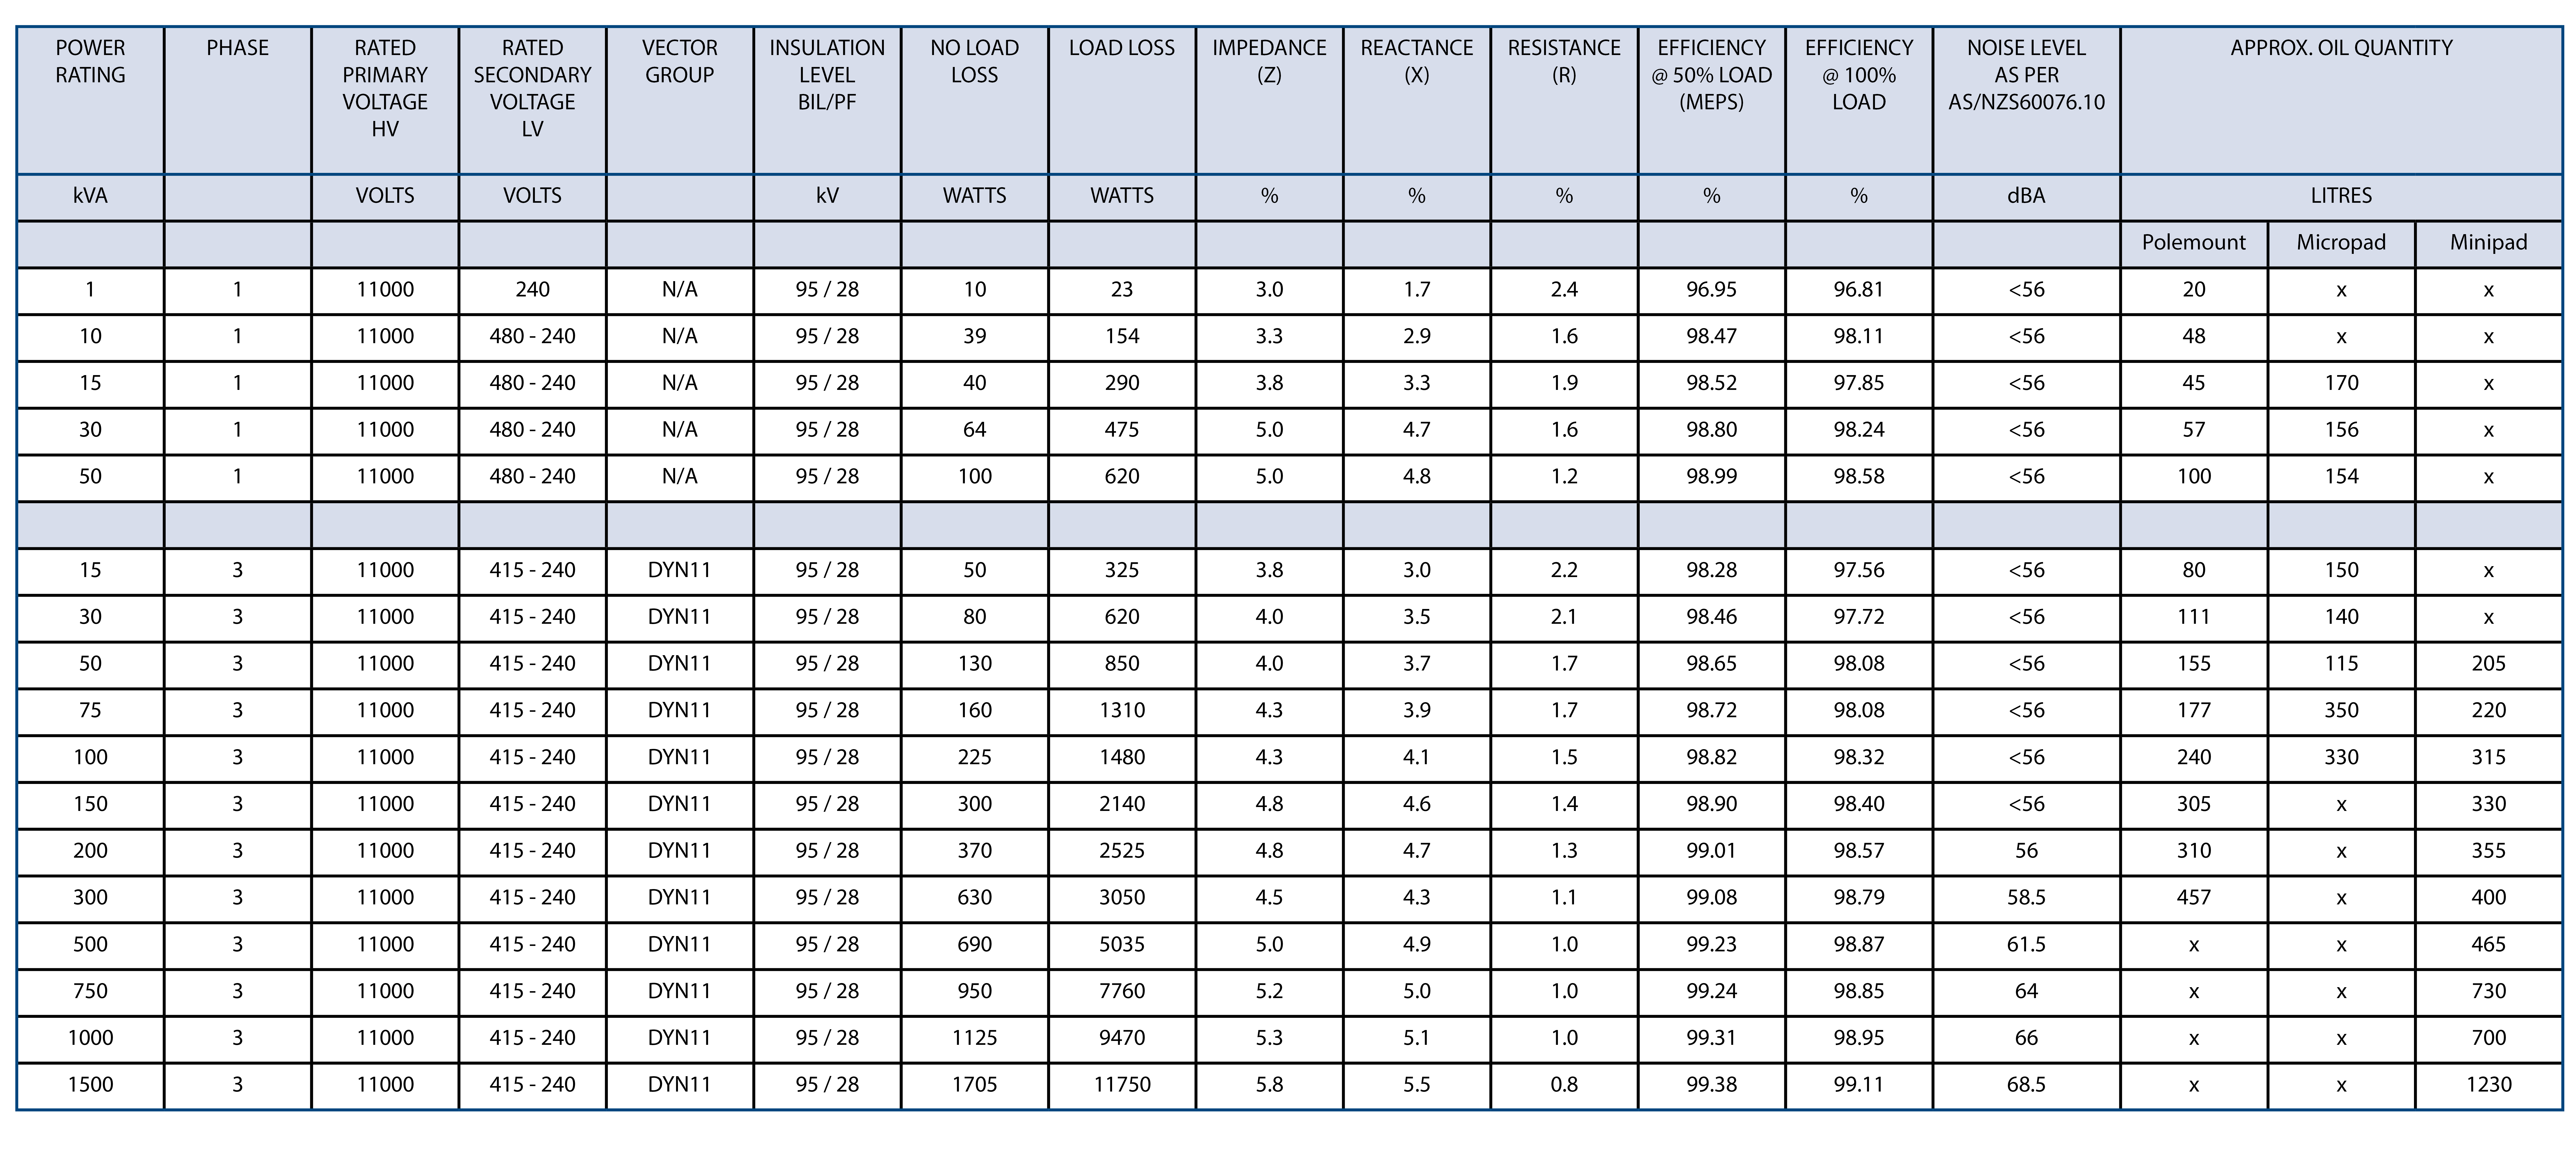 Electrical characteristics for standard 11kV transformers